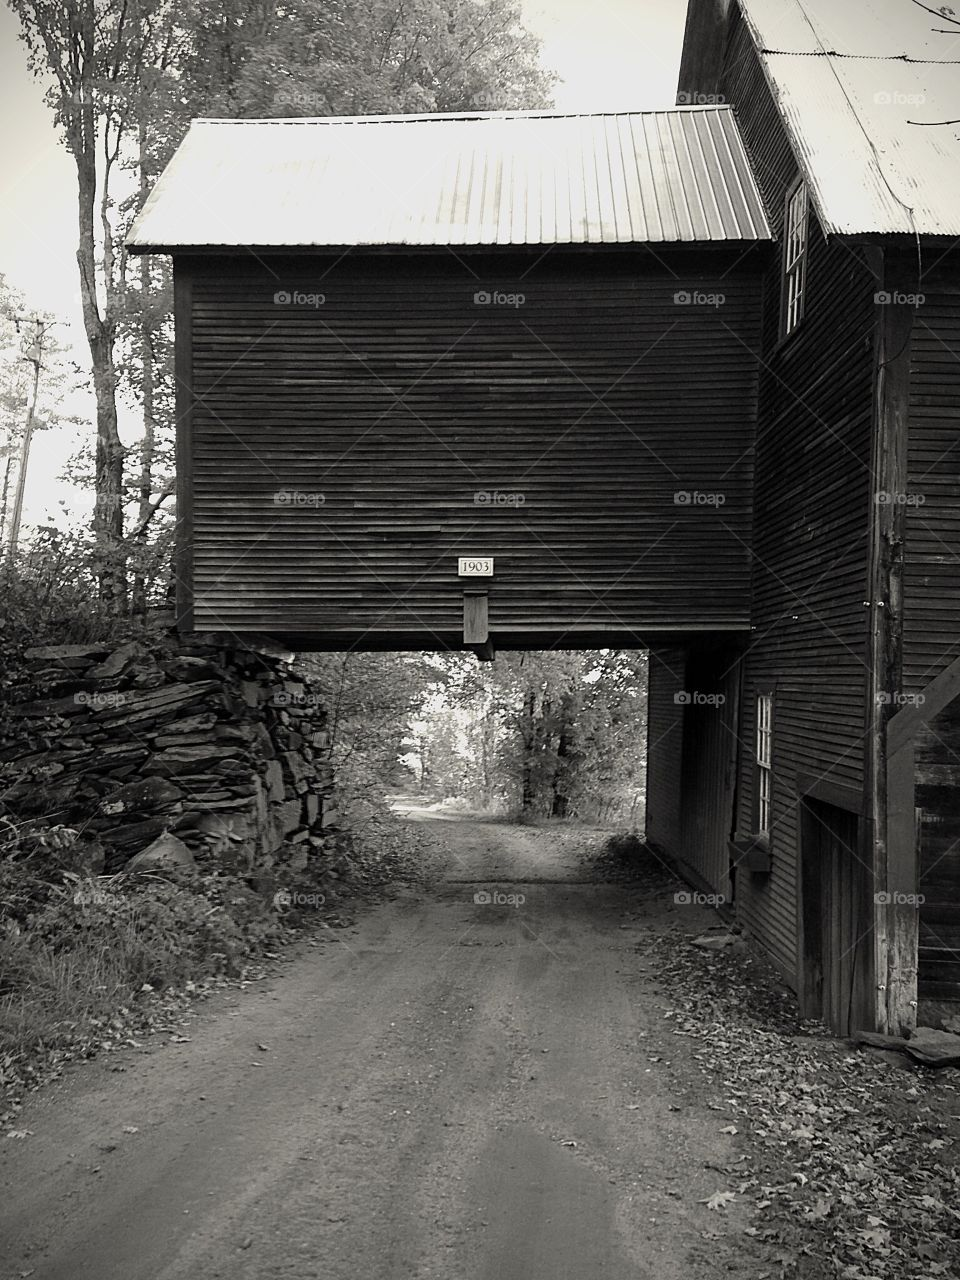 1903. Drive under the barn - black and white architecture mission